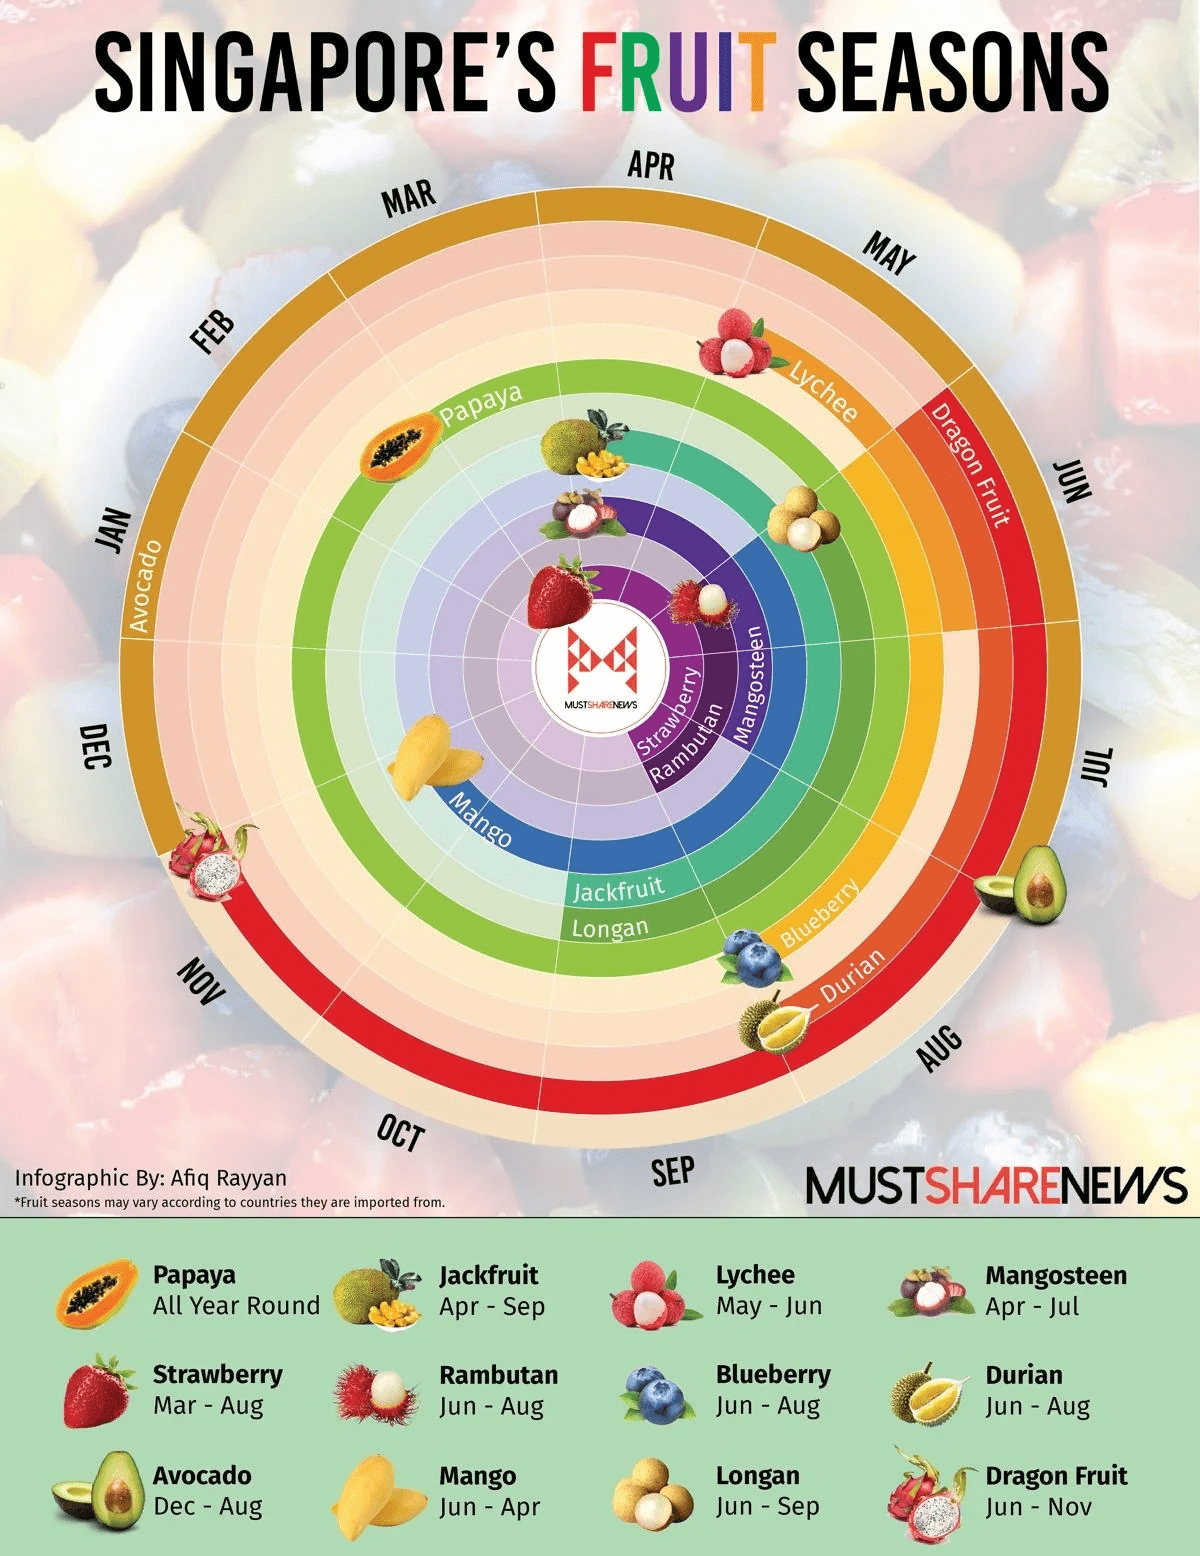 Buying fruits out of season